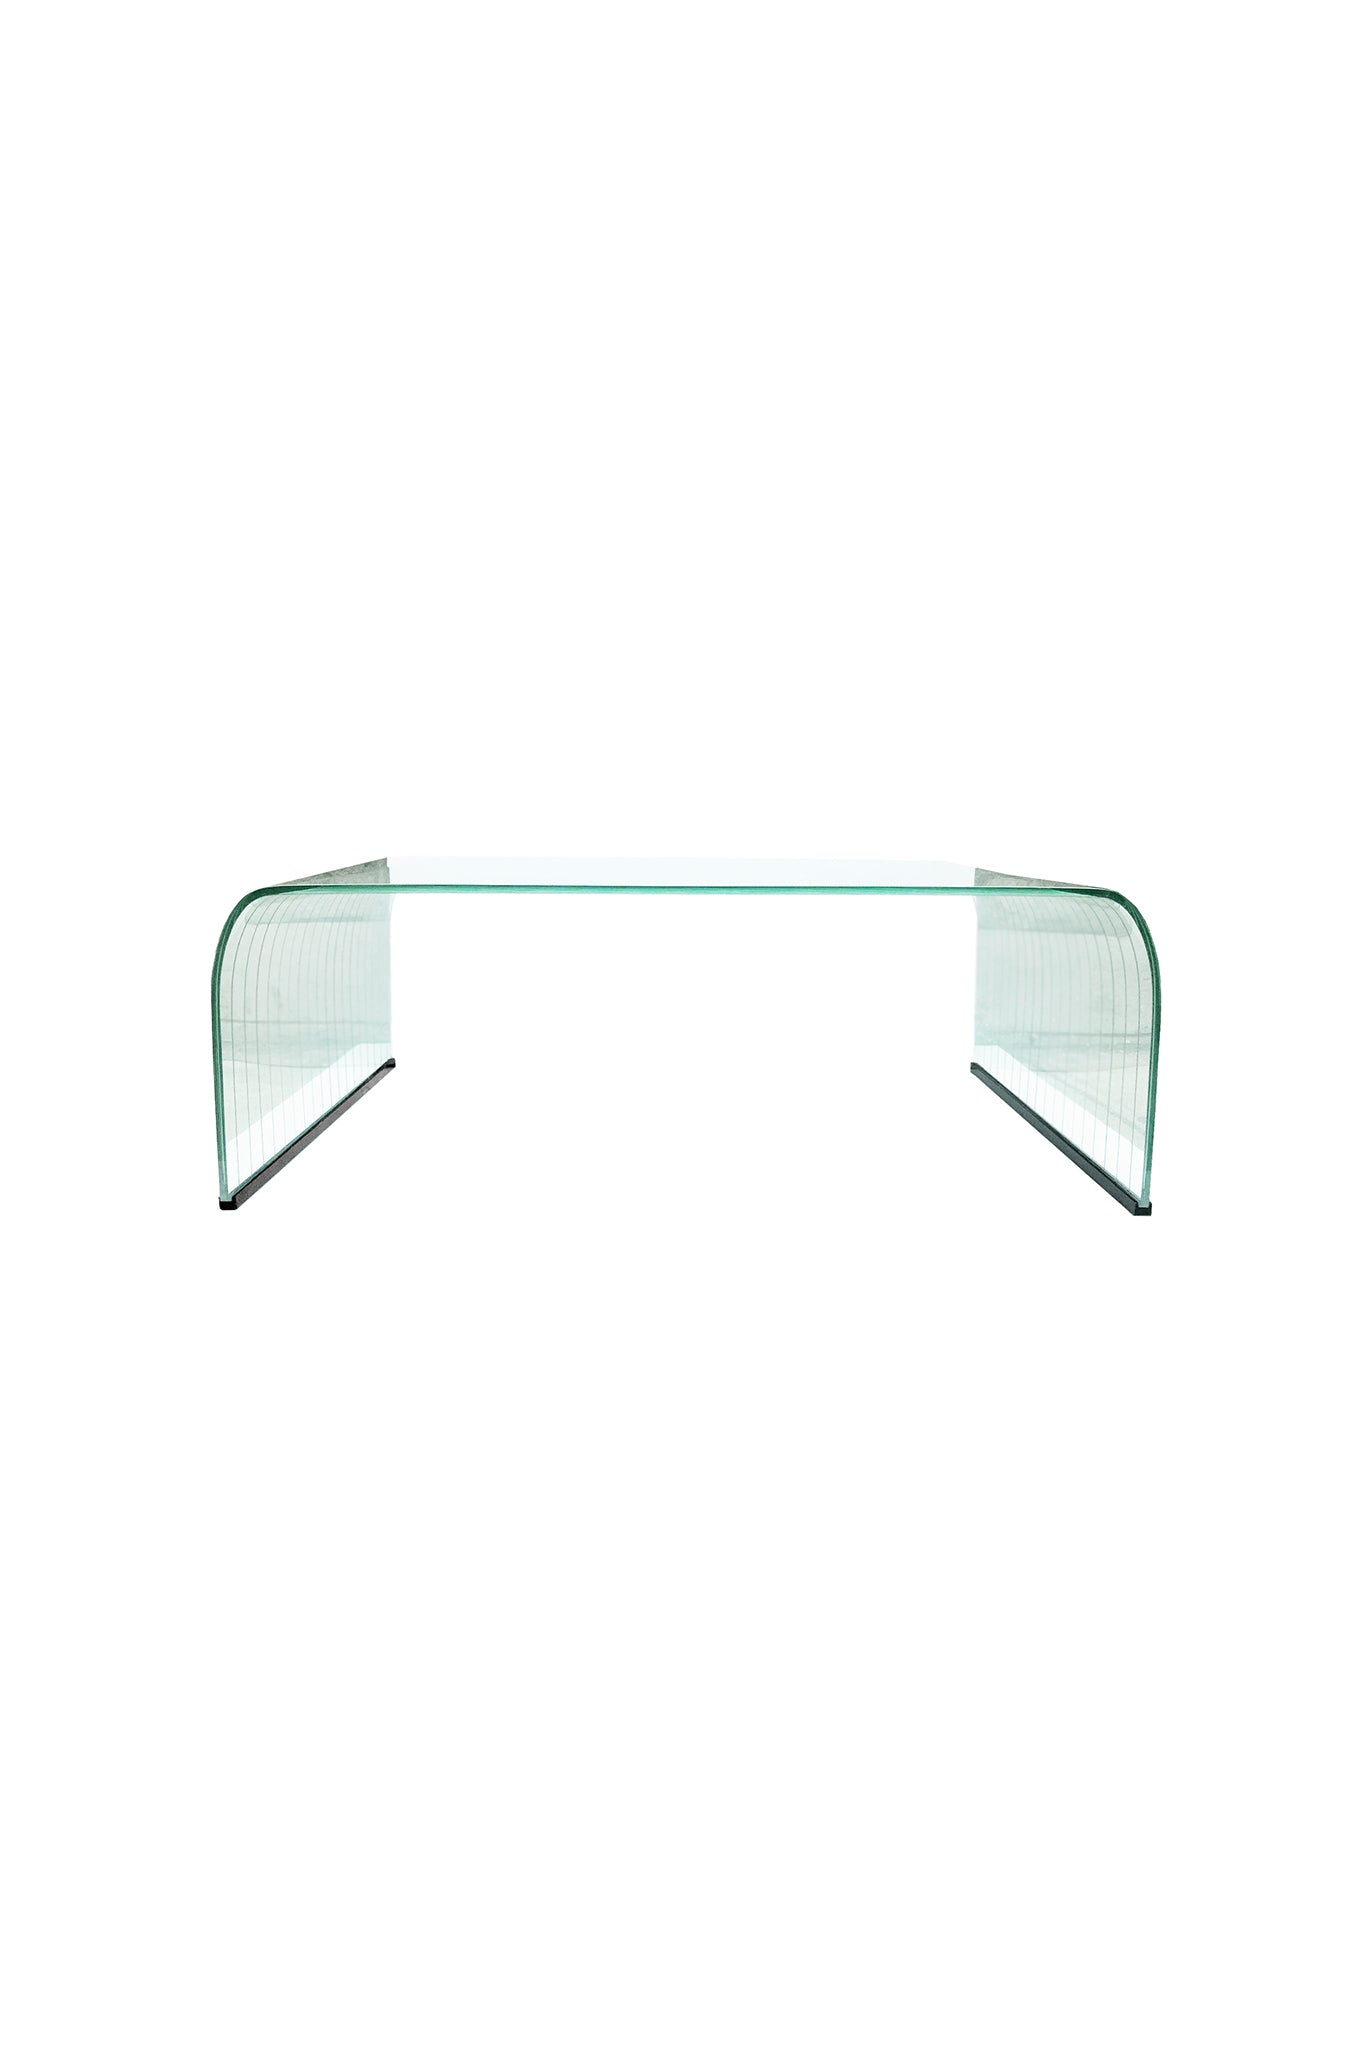 Swell 20Th Century Italian Glass Coffee Table In The Style Of Angelo Cortesi Interior Design Ideas Clesiryabchikinfo